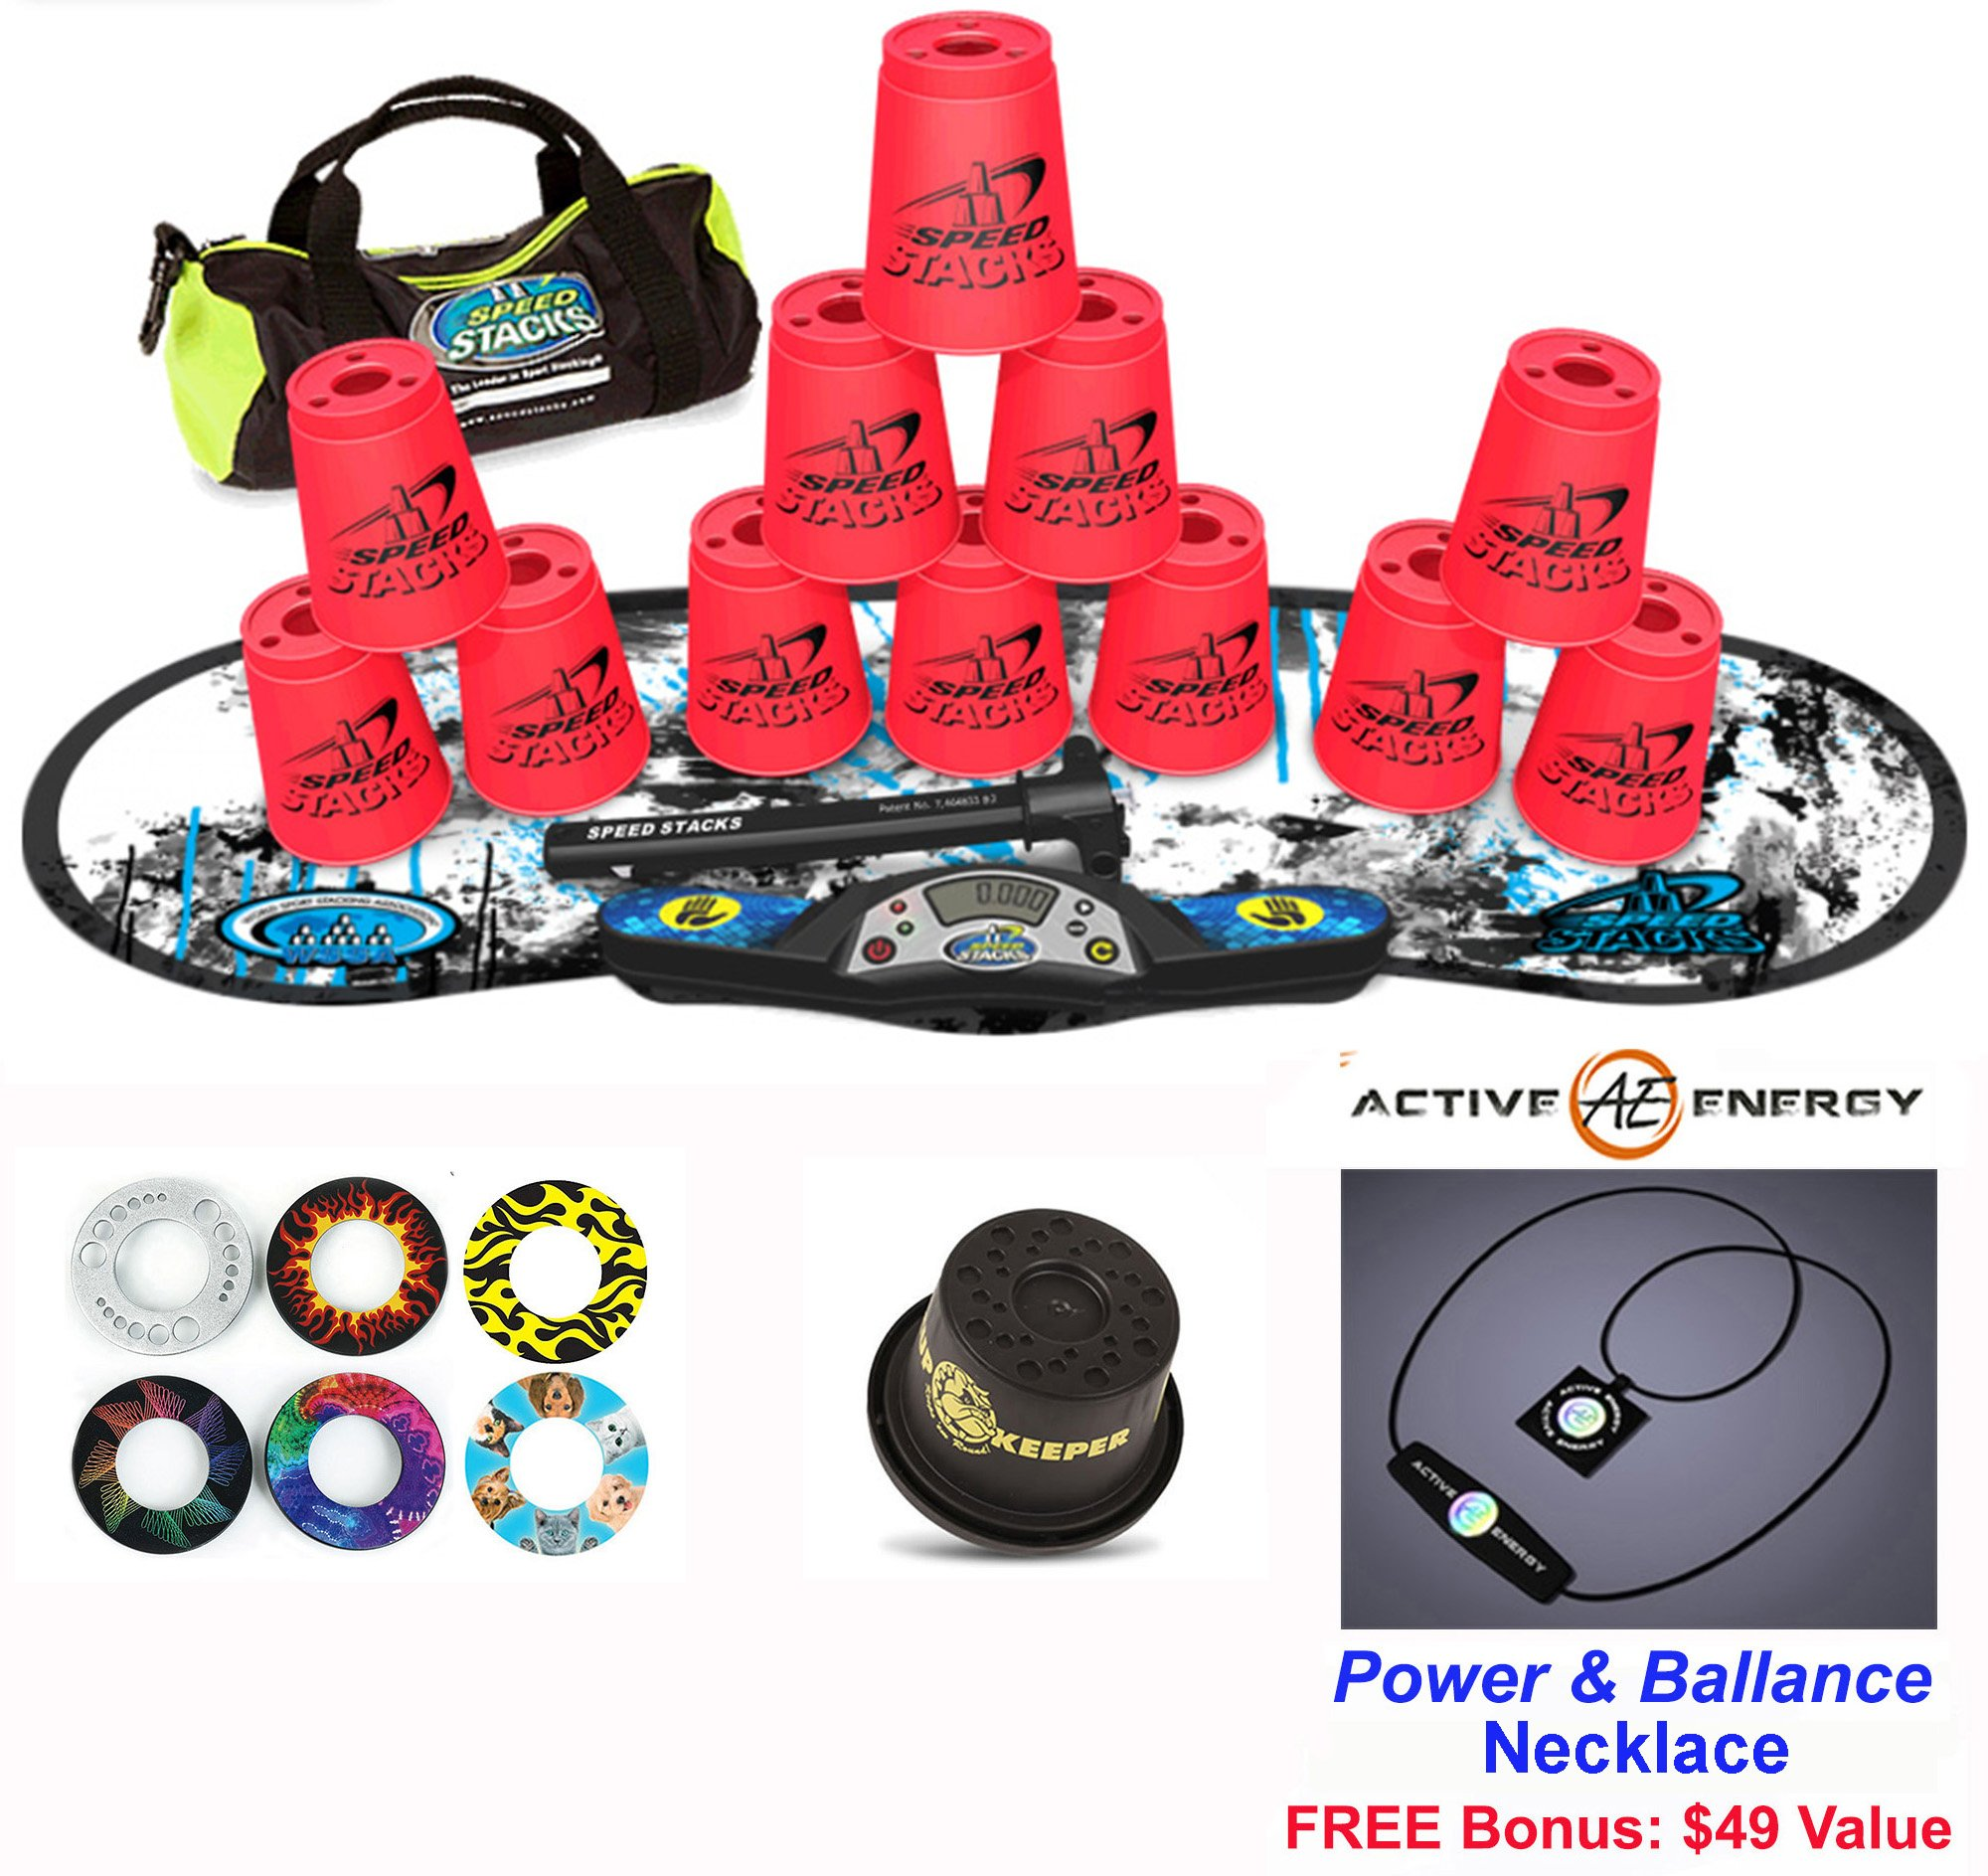 Speed Stacks Combo Set ''The Works'': 12 NEON PINK 4'' Cups, REBEL MUDD Gen 3 Mat, G4 Pro Timer, Cup Keeper, Stem, Gear Bag, 6 Snap Tops + Active Energy Necklace by Speed Stacks